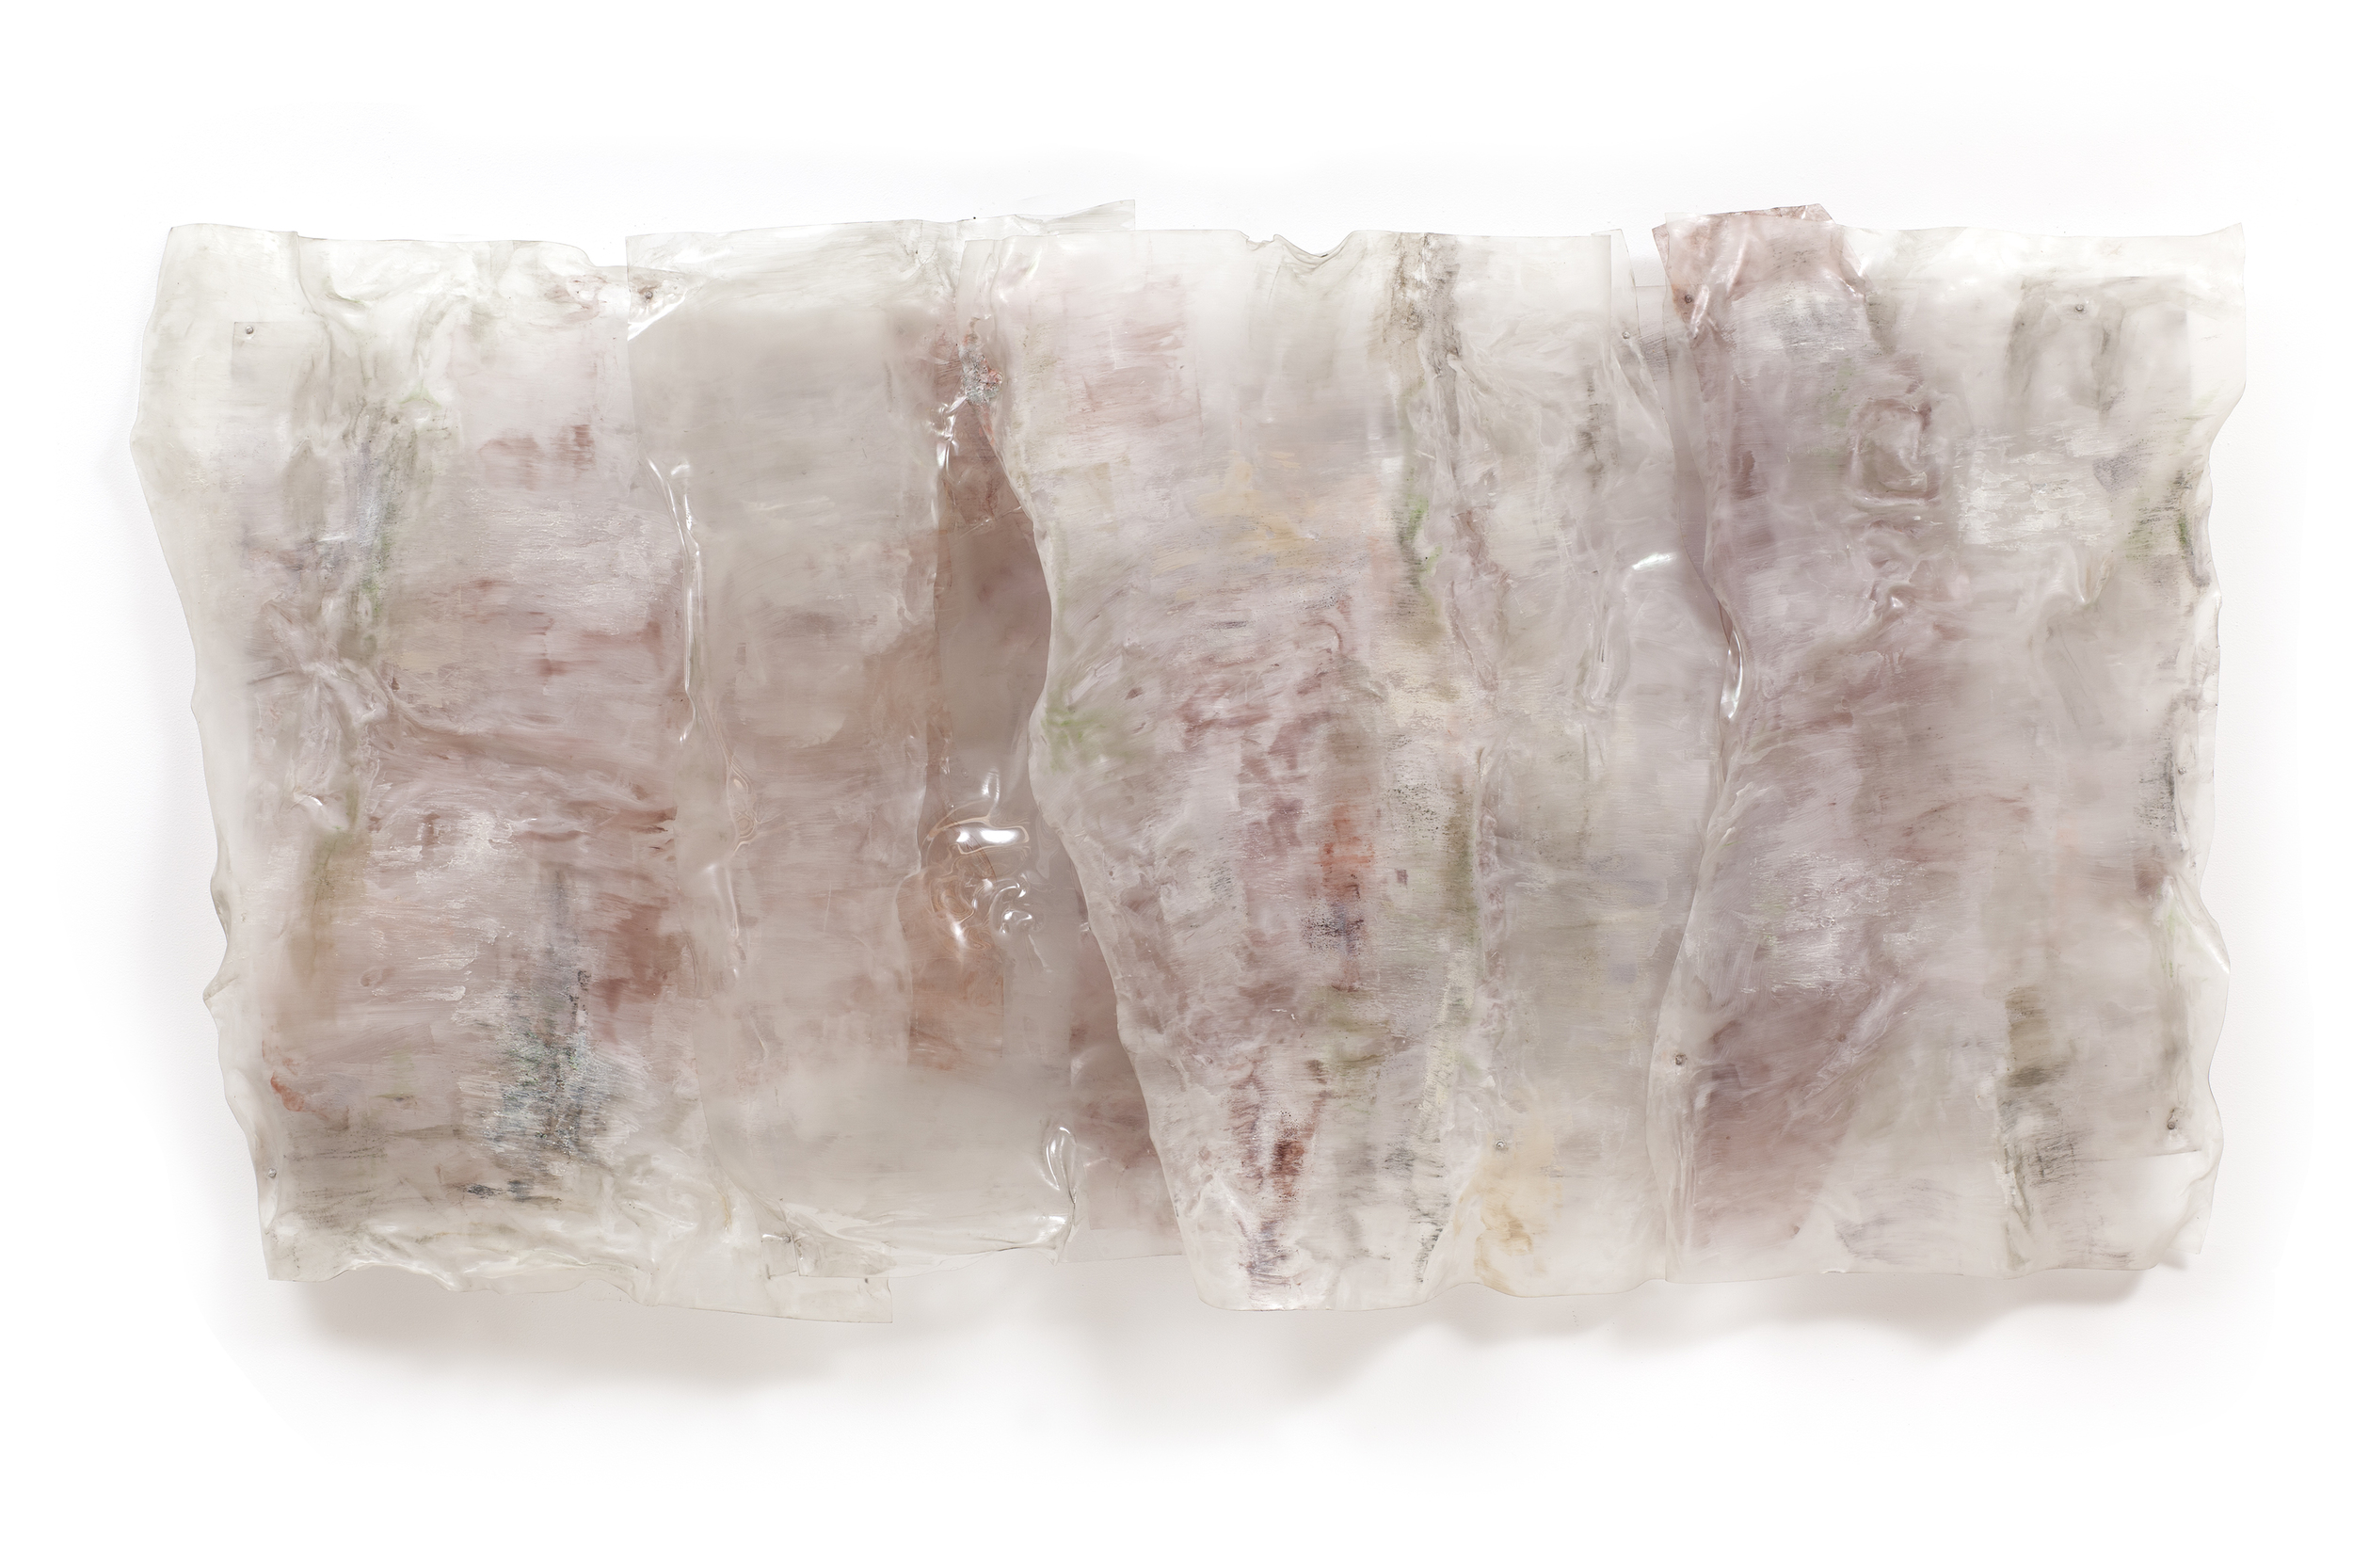 "STRATA, 1988, Acrylic on Lexan, 48"" x 96"" x 10"""